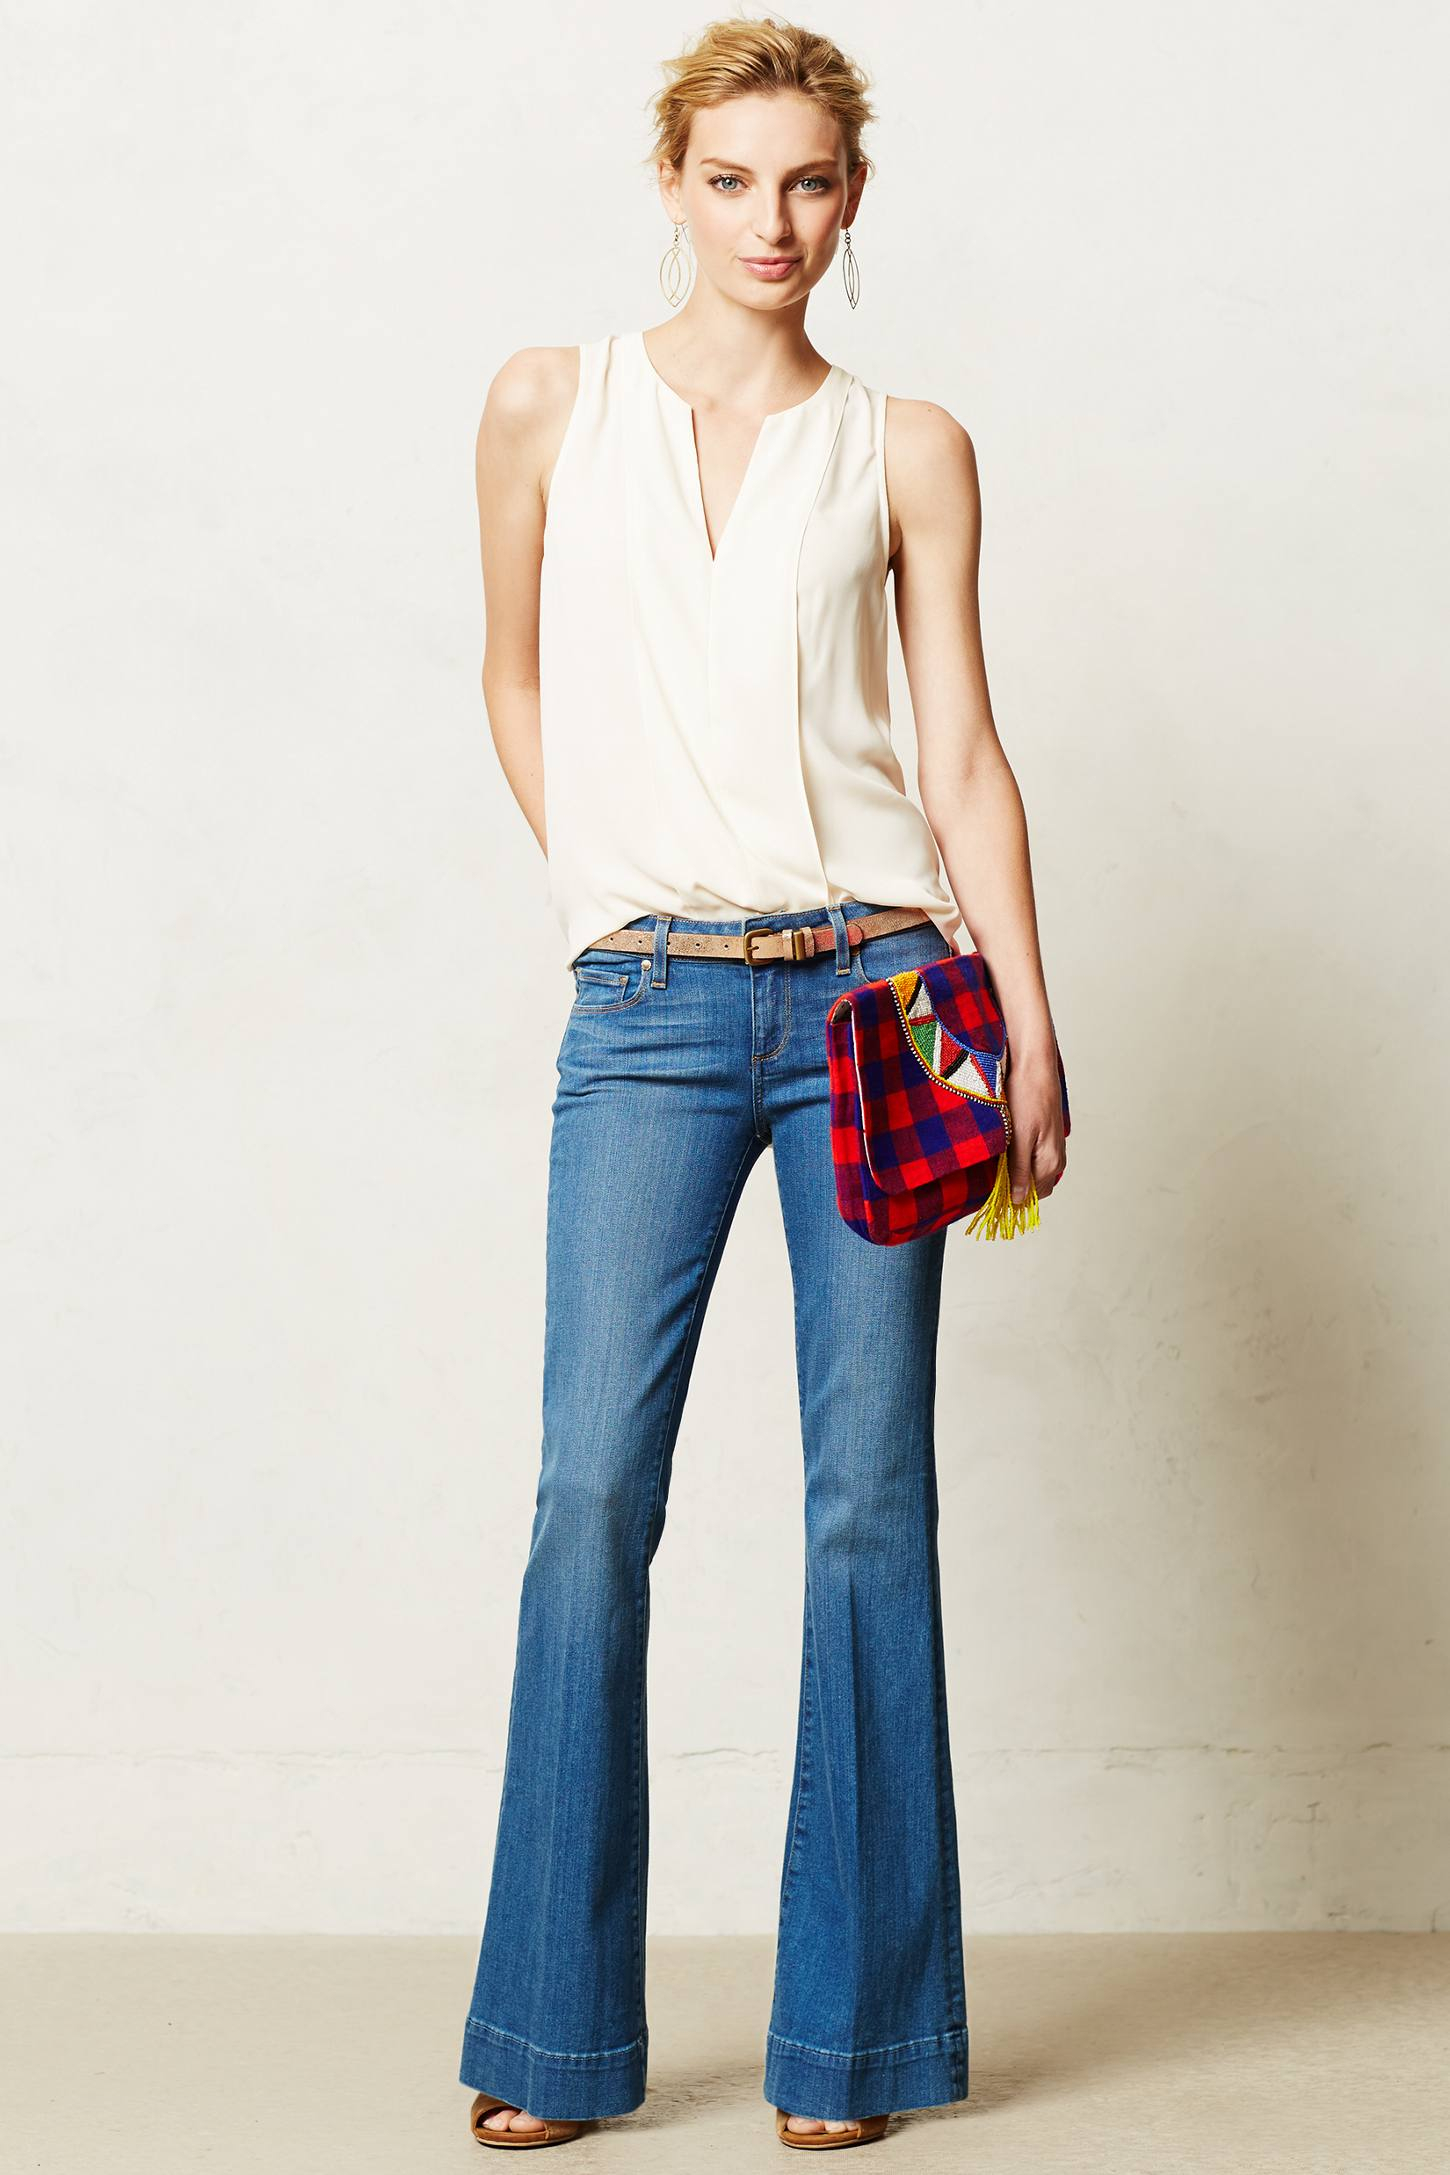 Anthropologie Paige Petite Fiona Flare Jeans in Blue | Lyst